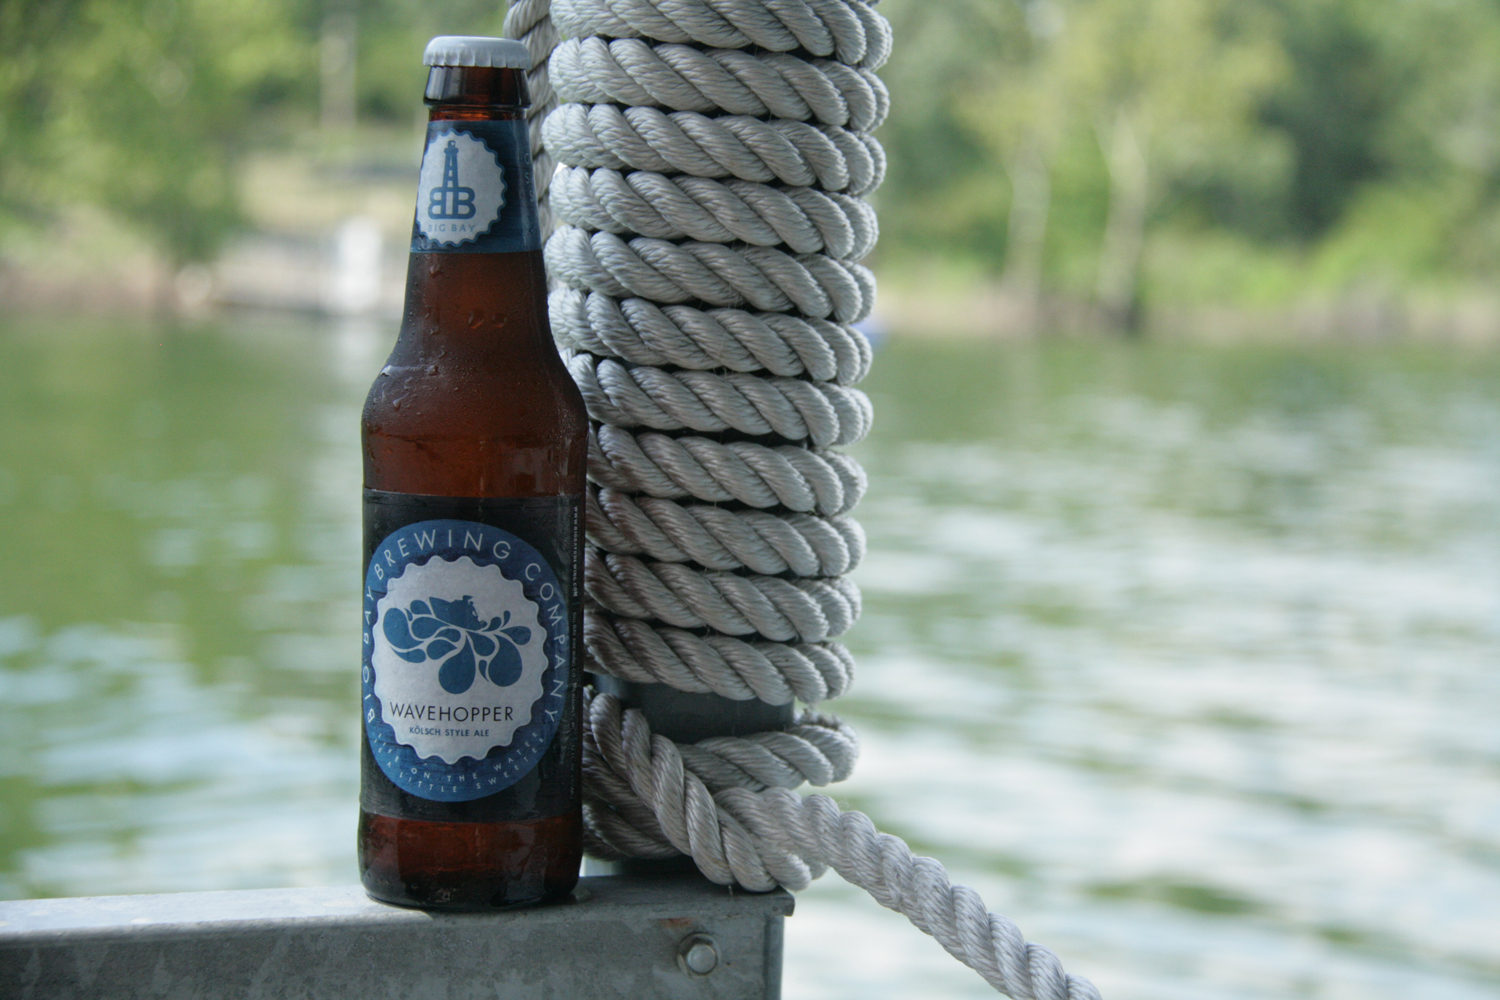 Enjoy Big Bay's Wavehopper summer boat beer.